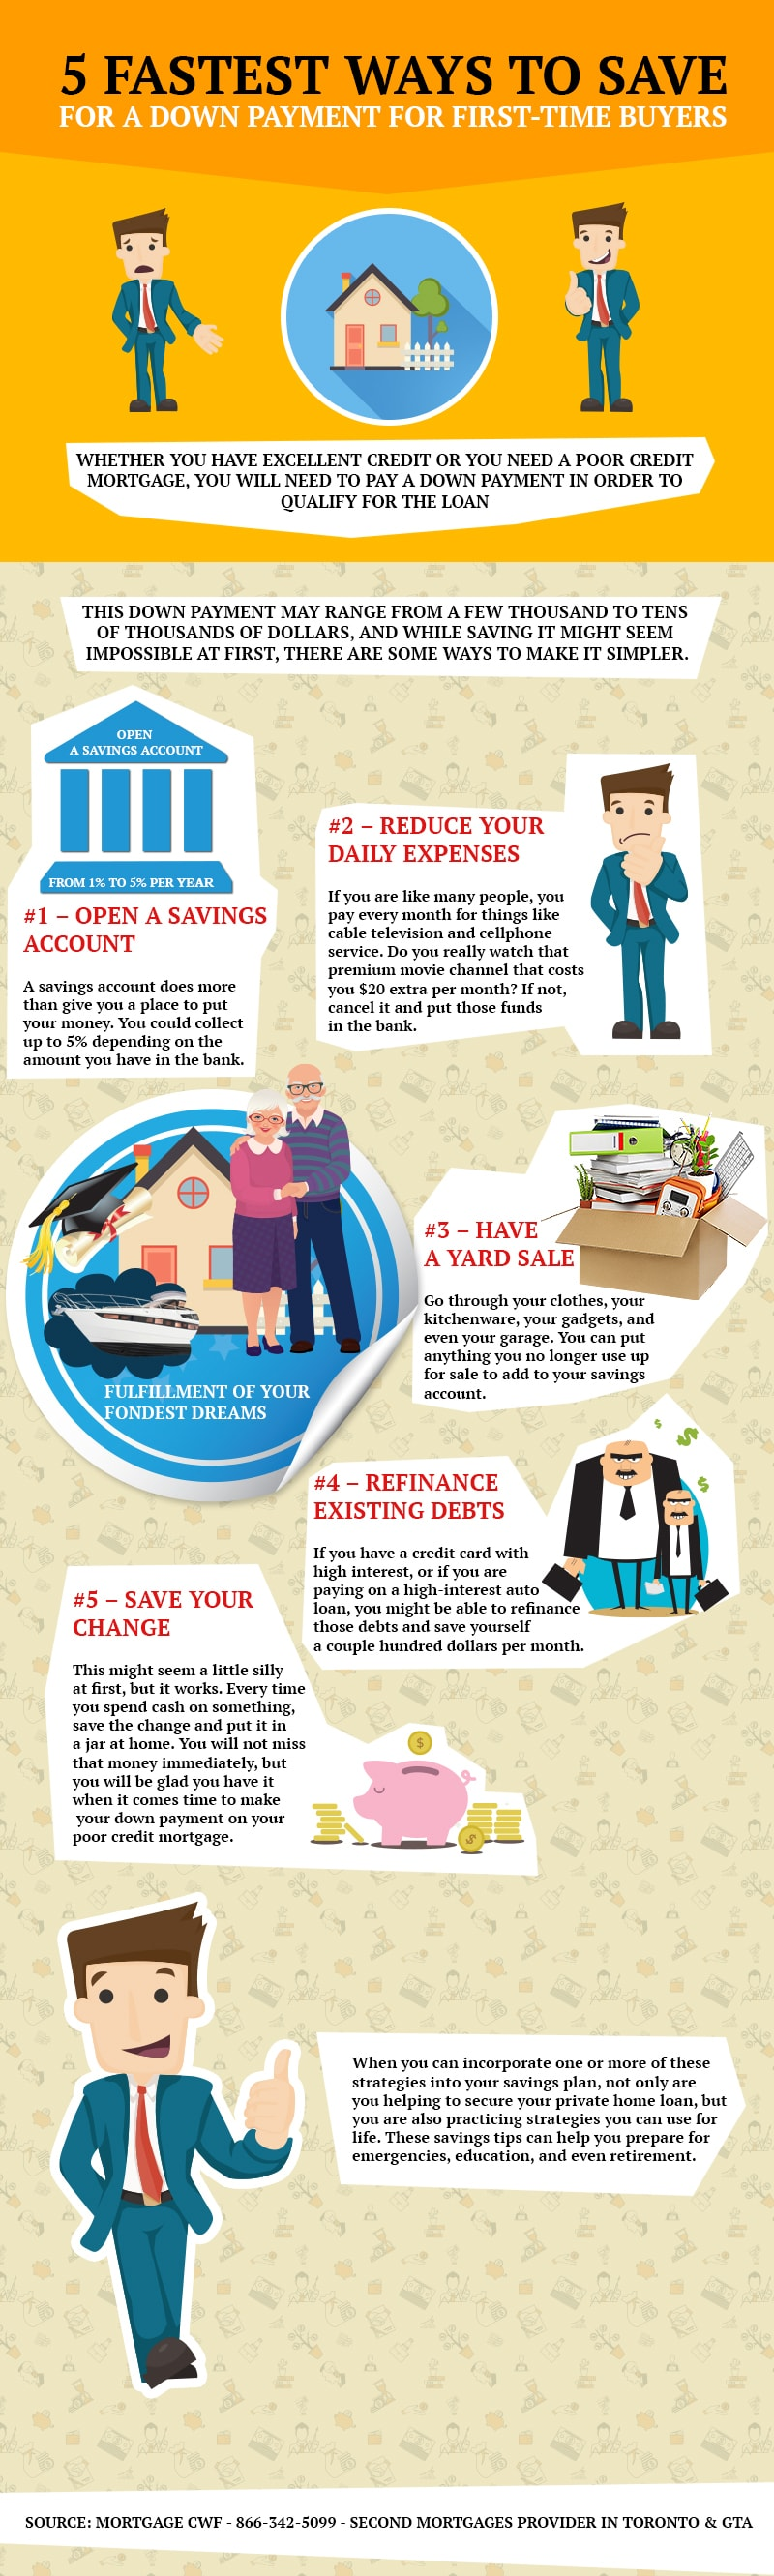 Fastest Ways to Save for a Down Payment - Infographic